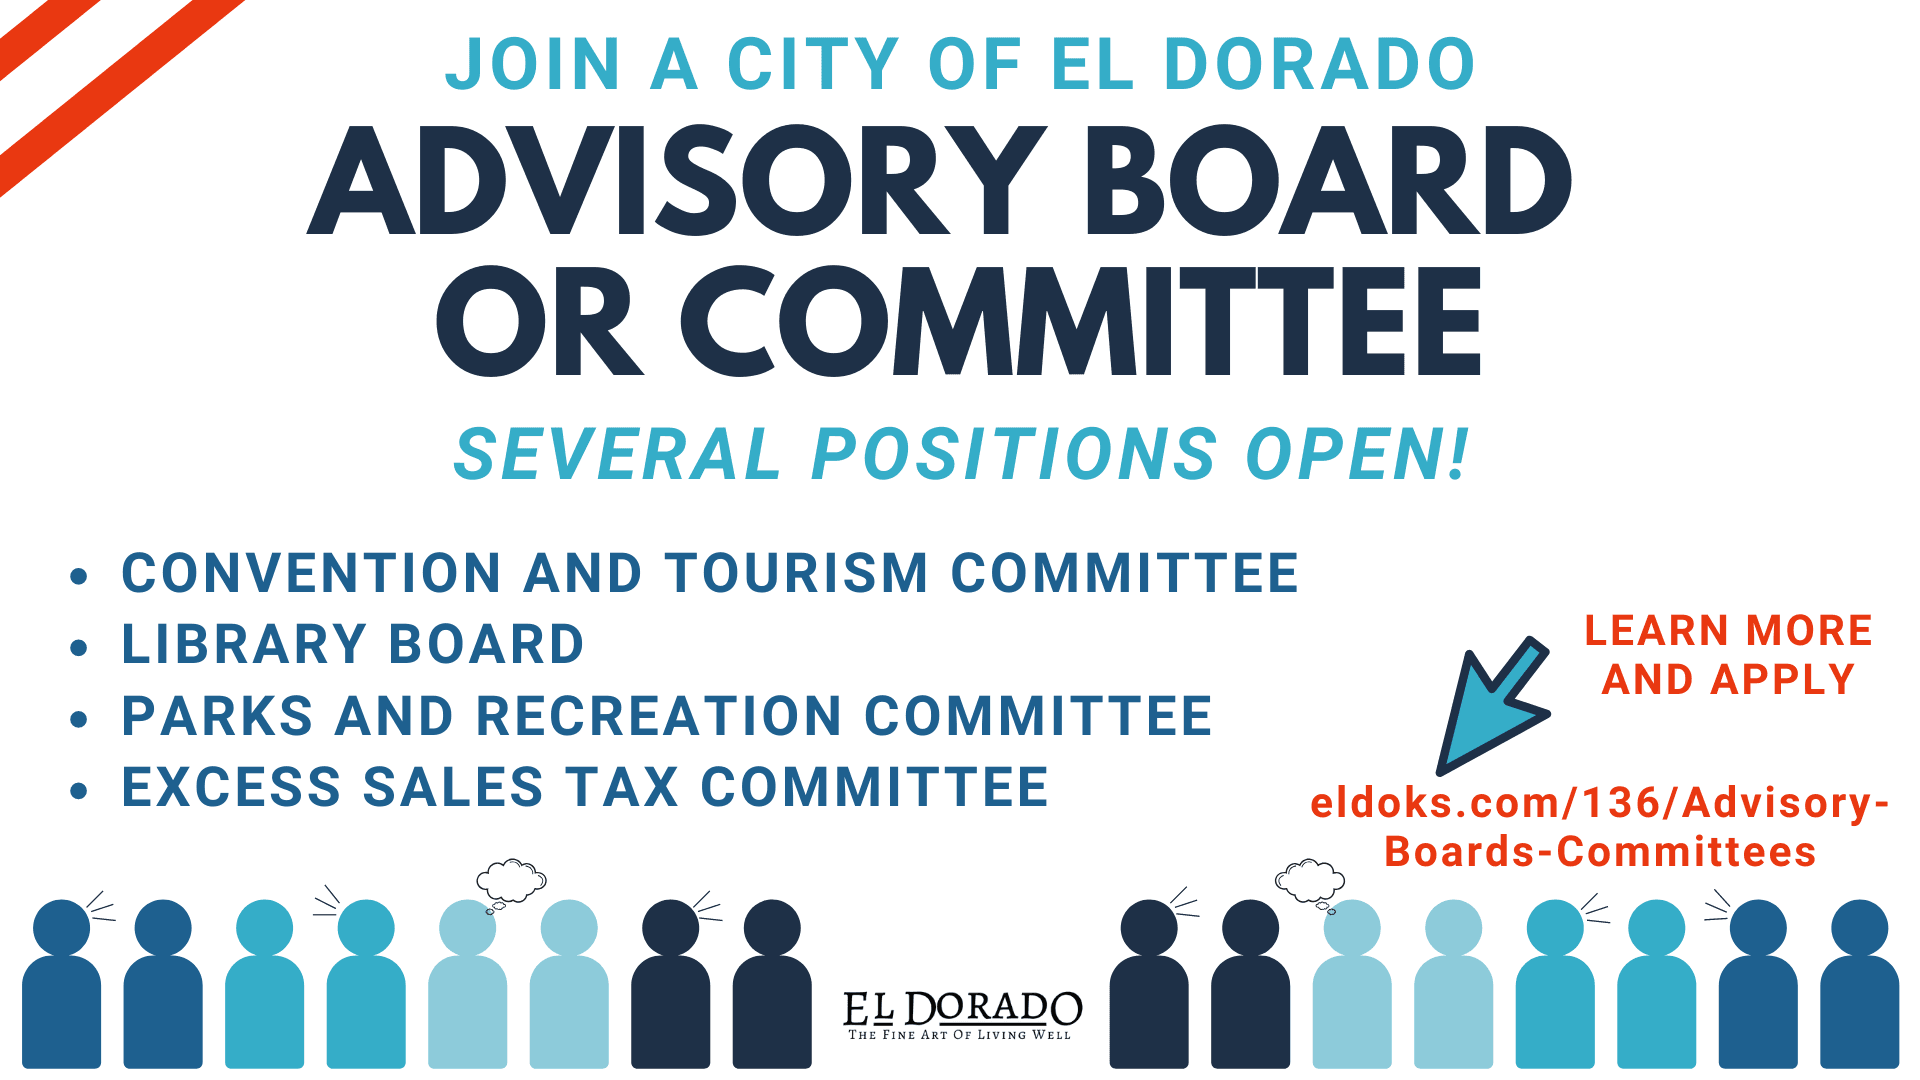 Advisory Board and Committee Openings